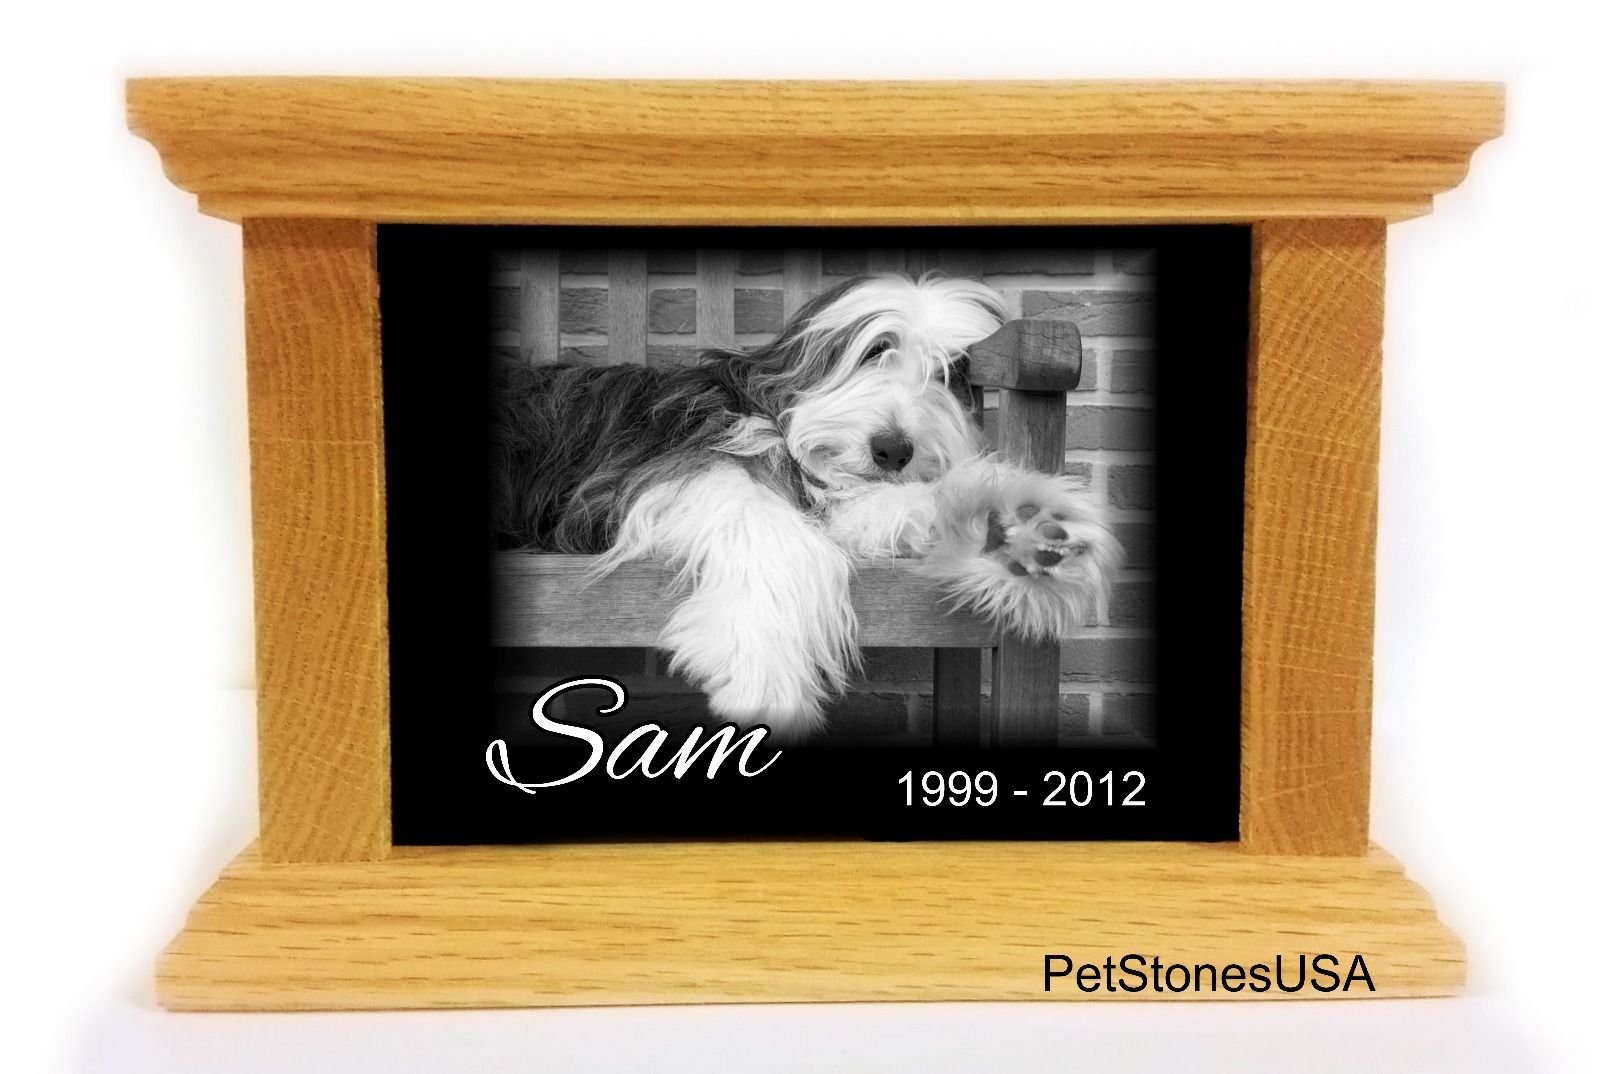 Pet Cremation Urn Oak Wood Box Photo Memorial Granite Any Animal up to 65 Pounds Personalized Personalised